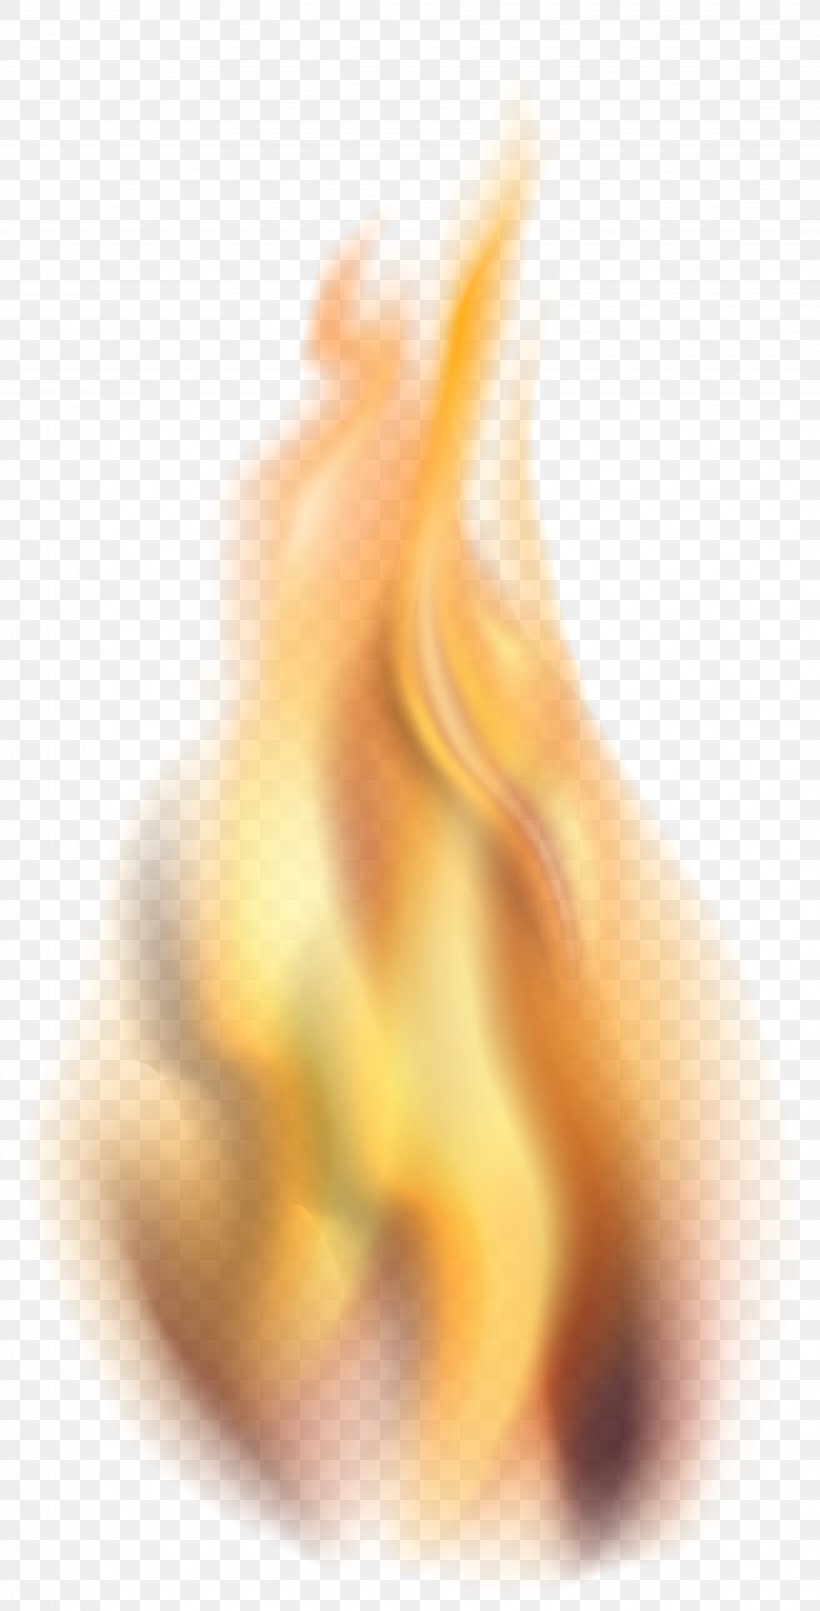 Fire Flame Clip Art, PNG, 4072x8000px, Fire, Campfire, Clipping Path, Close Up, Colored Fire Download Free